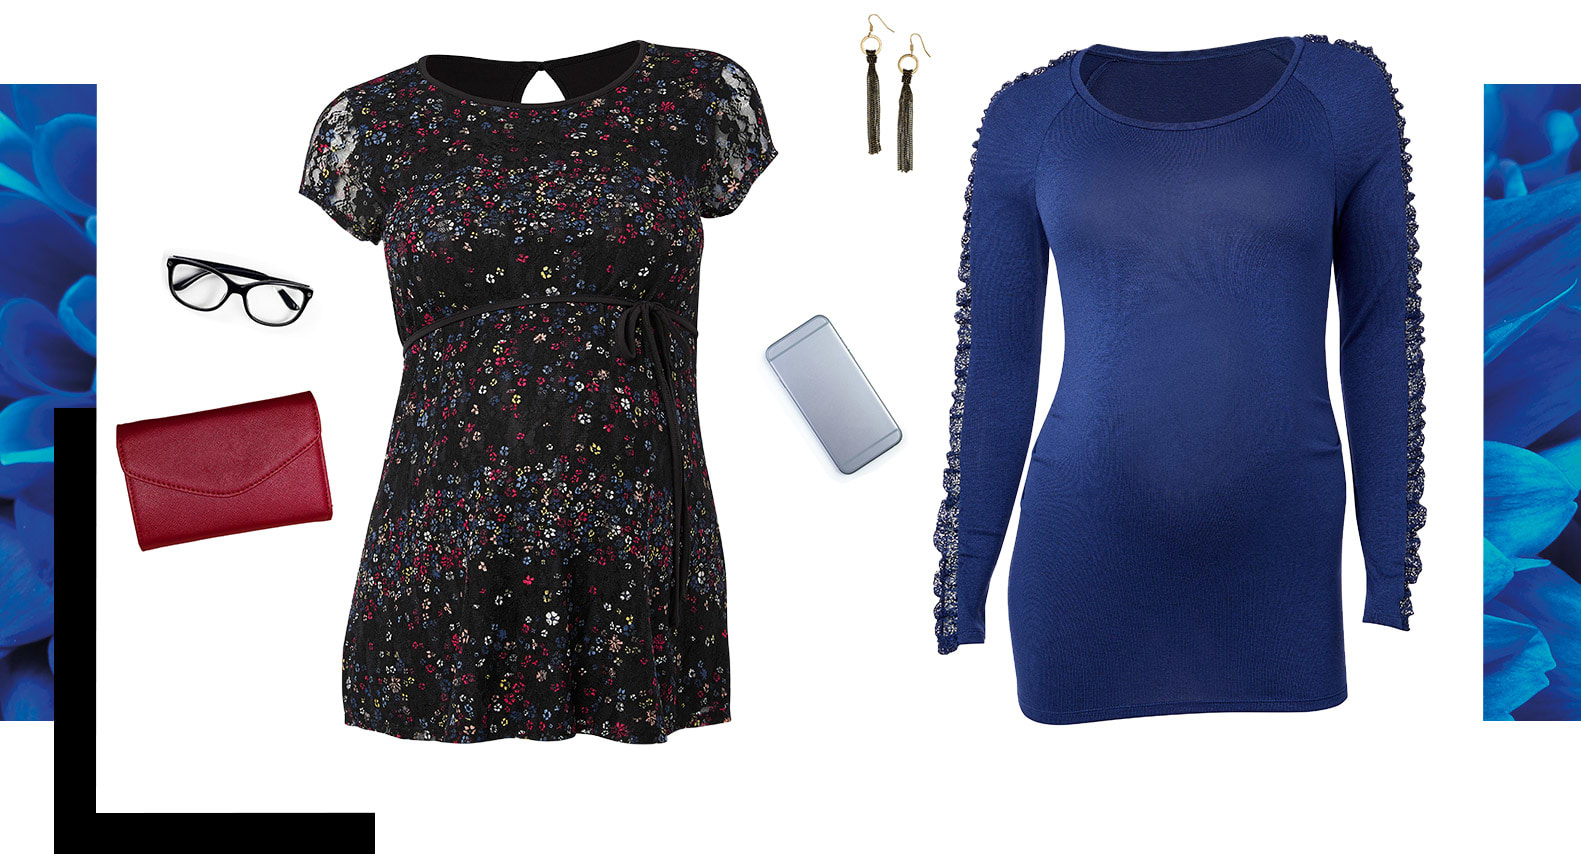 blue t-shit, floral blouse, glasses, earring, cellphone and wallet